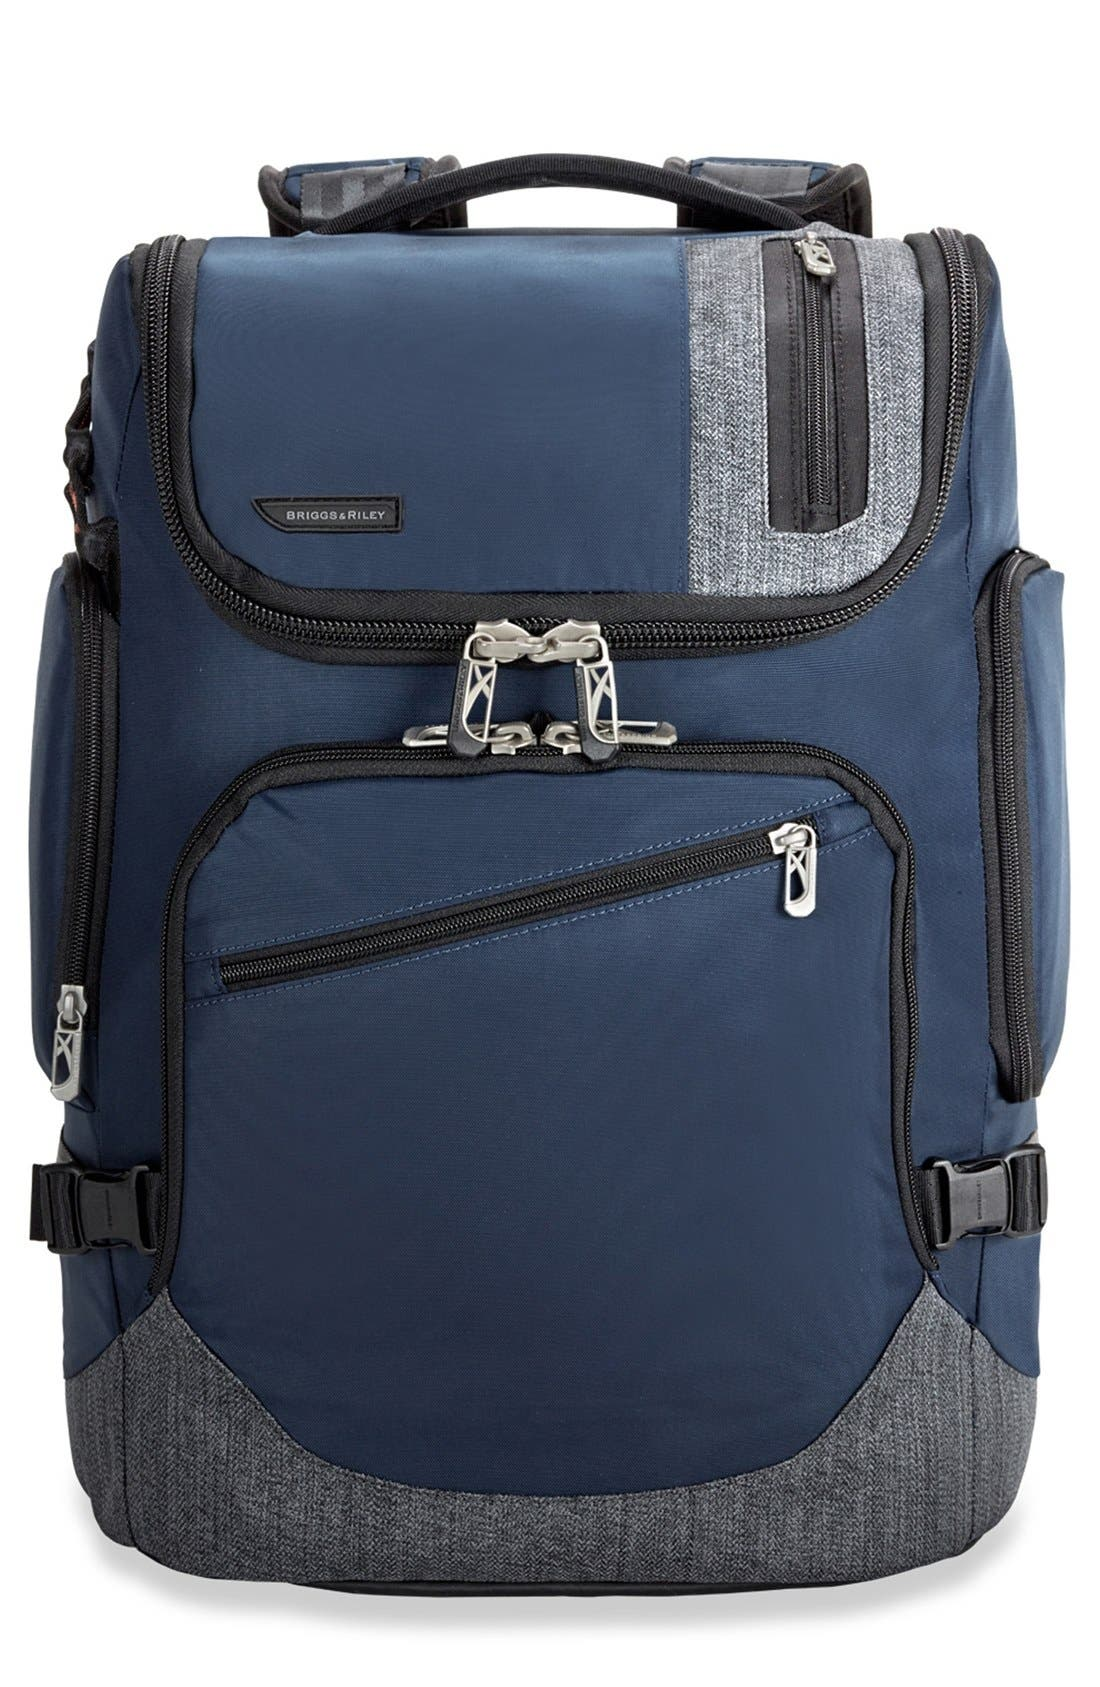 Alternate Image 1 Selected - Briggs & Riley BRX - Excursion Backpack